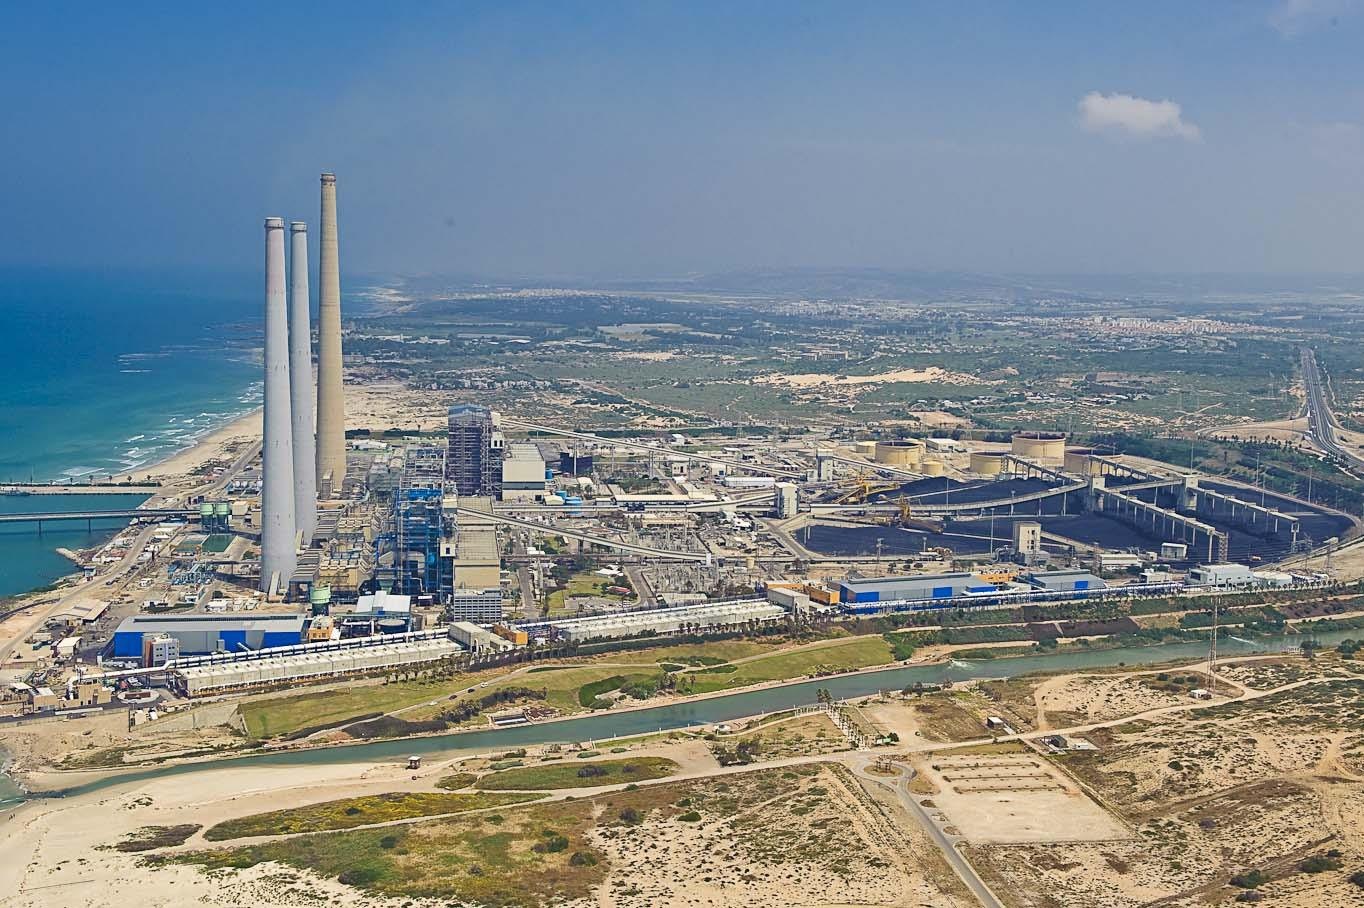 Aerial photograph of a large desalination complex in Israel, situated between sea, a green populated area, and desert